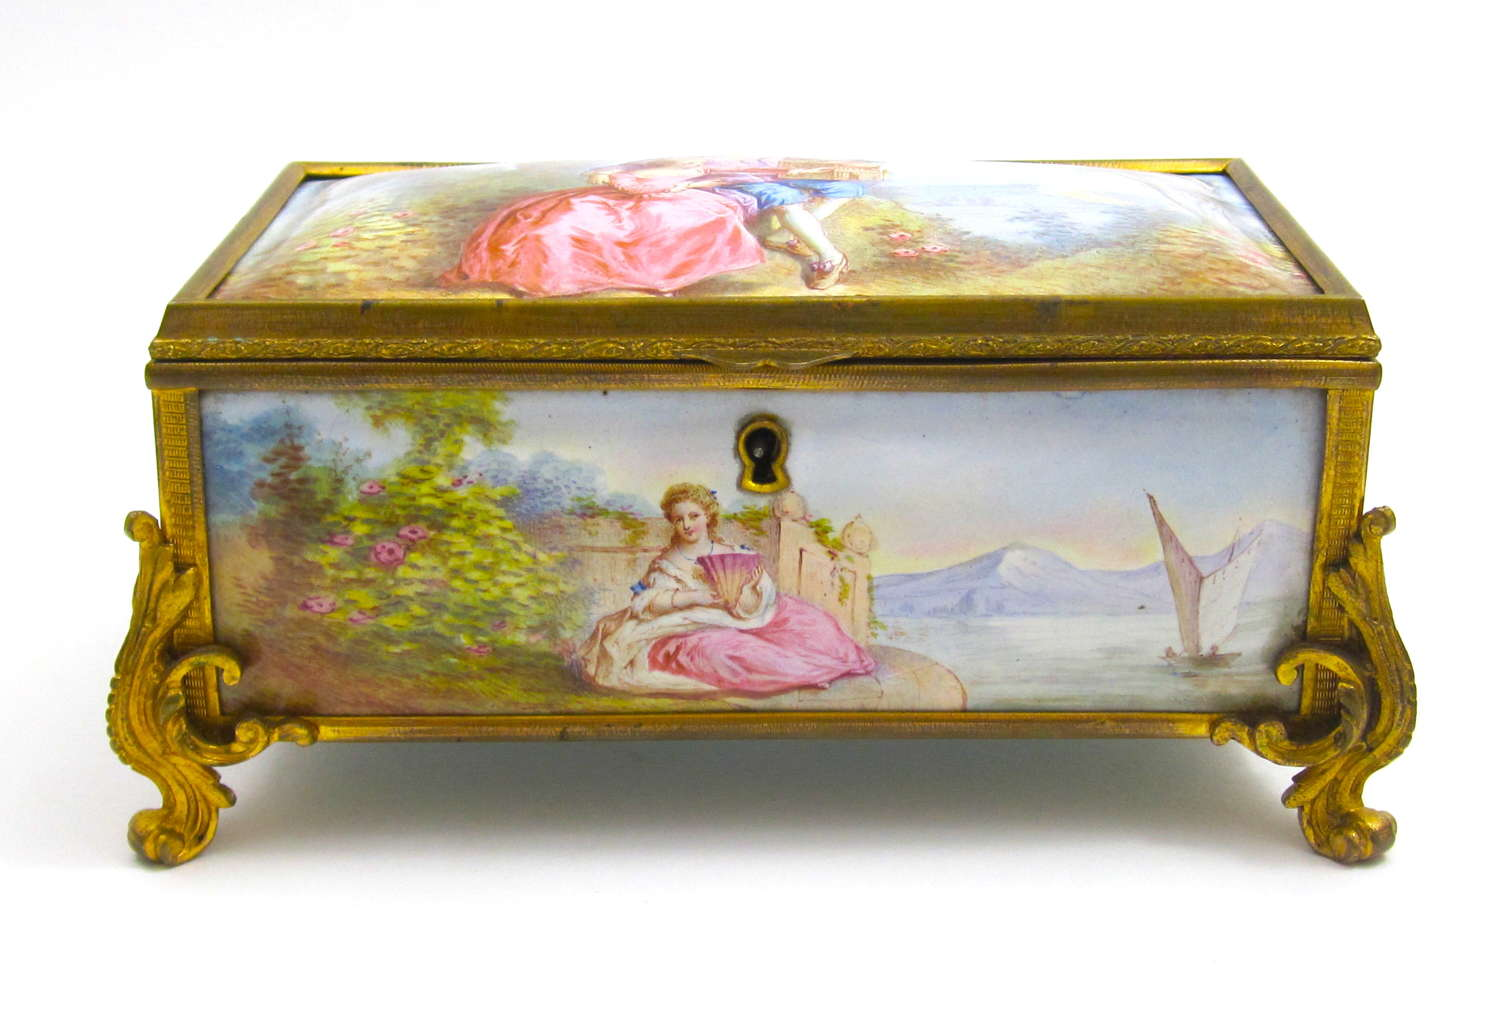 Stunning High Quality Antique French Enamelled Casket